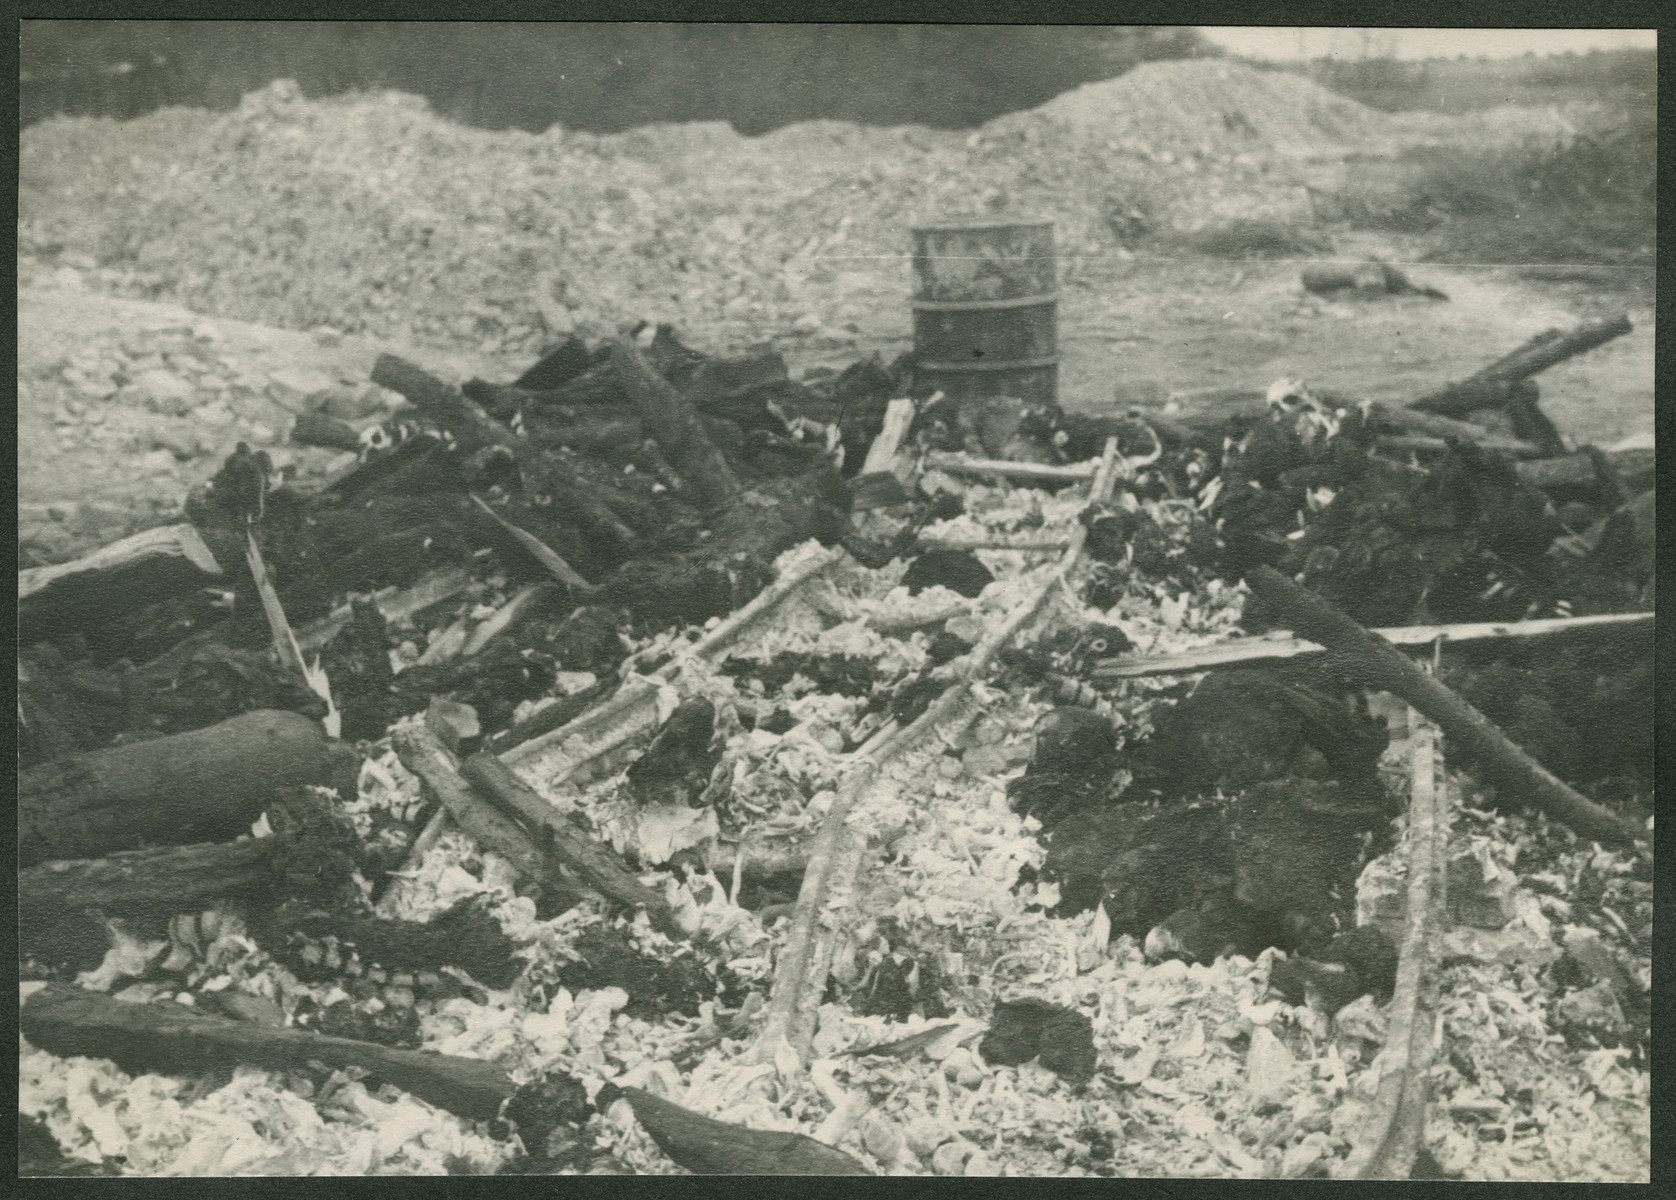 View of the remains of charred bones and wood in the Ohrdruf concentration camp.